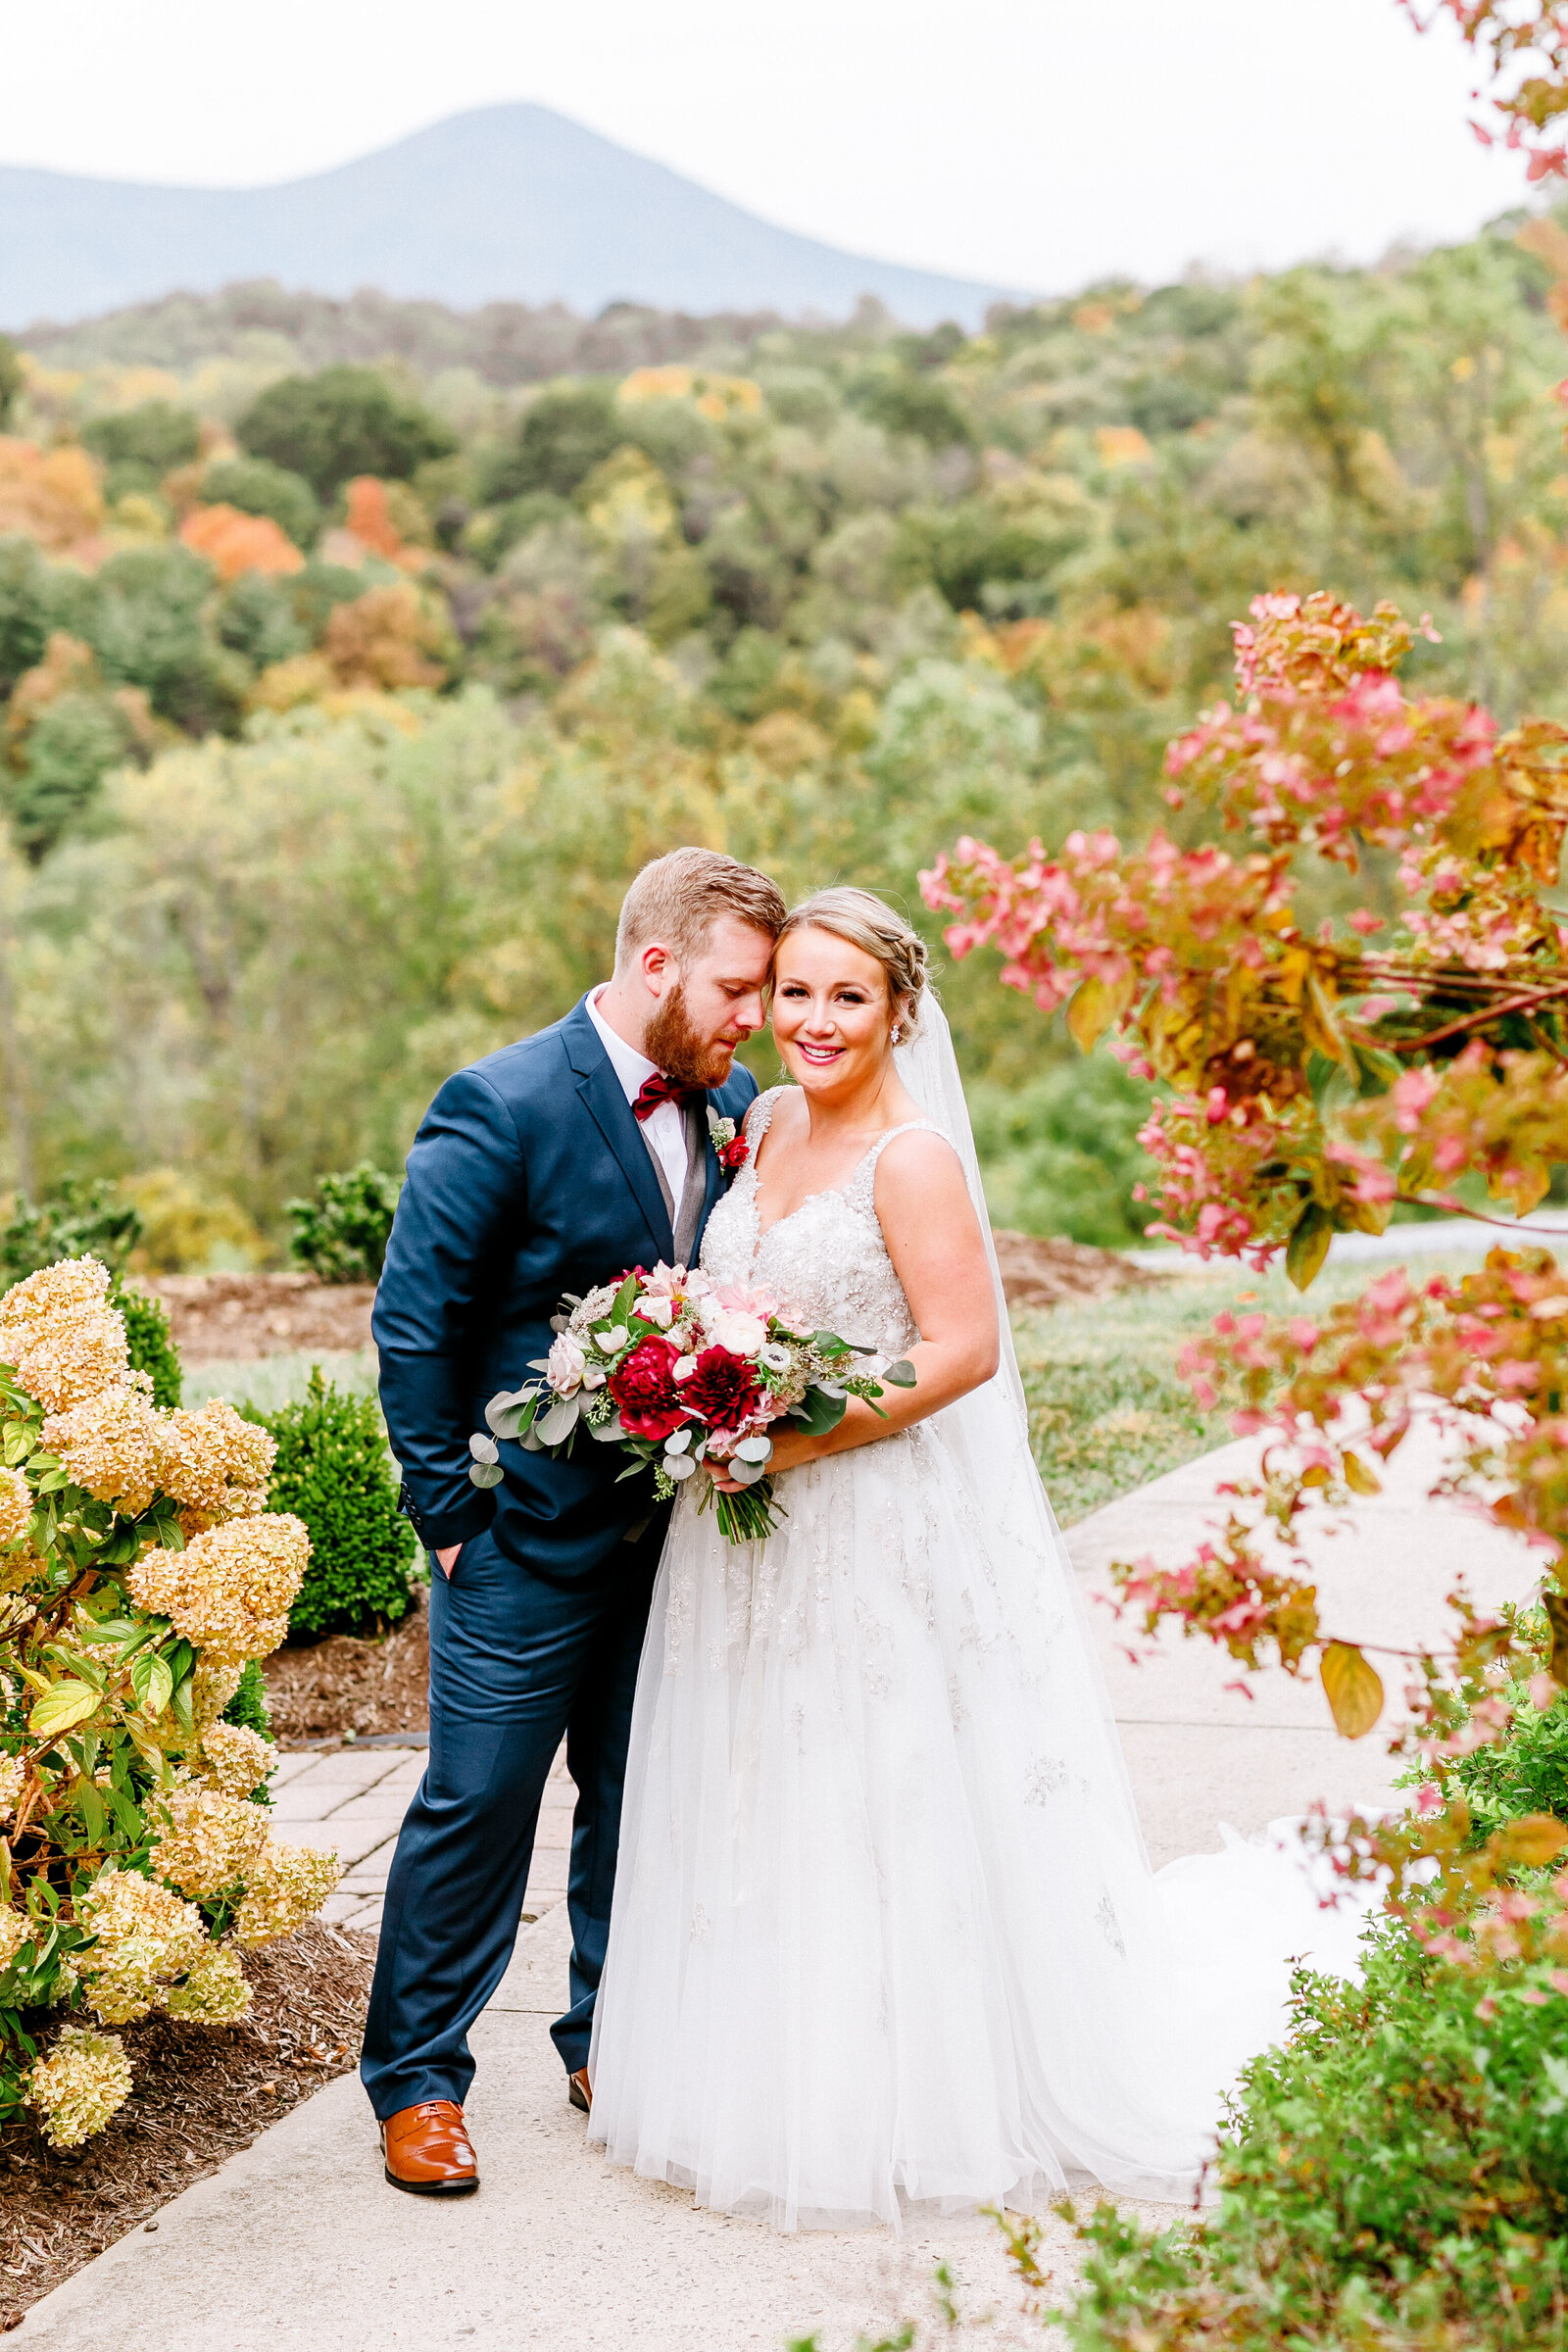 Laura and Nick Wedding 2019-173